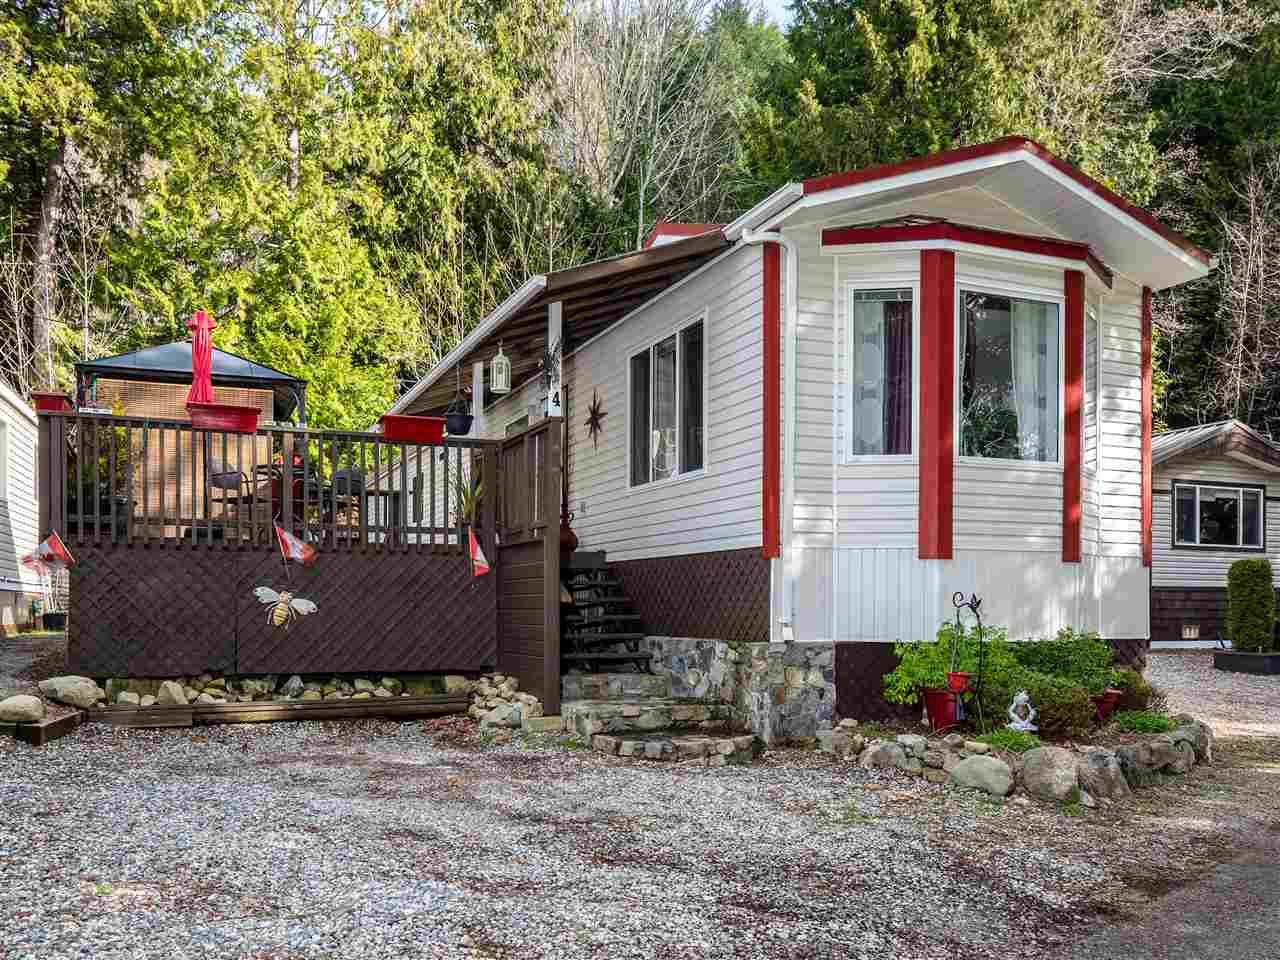 Main Photo: 4 12793 MADEIRA PARK Road in Madeira Park: Pender Harbour Egmont Manufactured Home for sale (Sunshine Coast)  : MLS®# R2545308